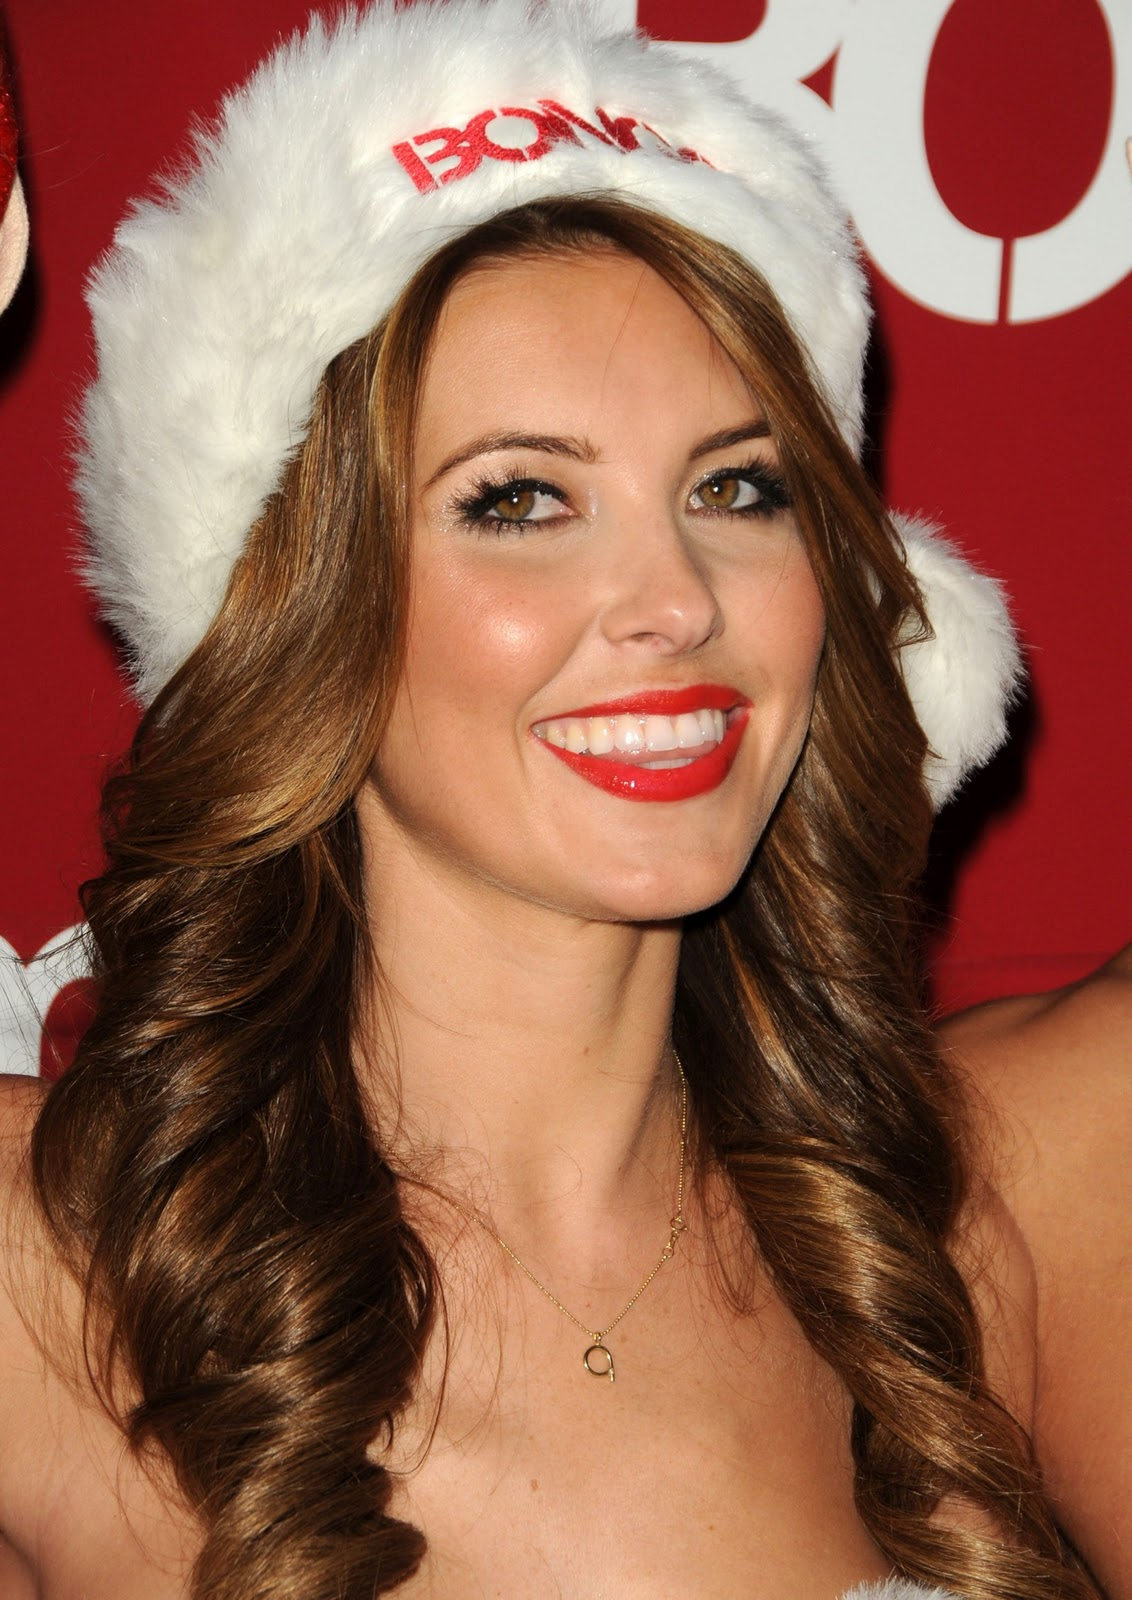 Girl With Wallpaper Dress Spicy Snap Audrina Patridge In Christmas Dress